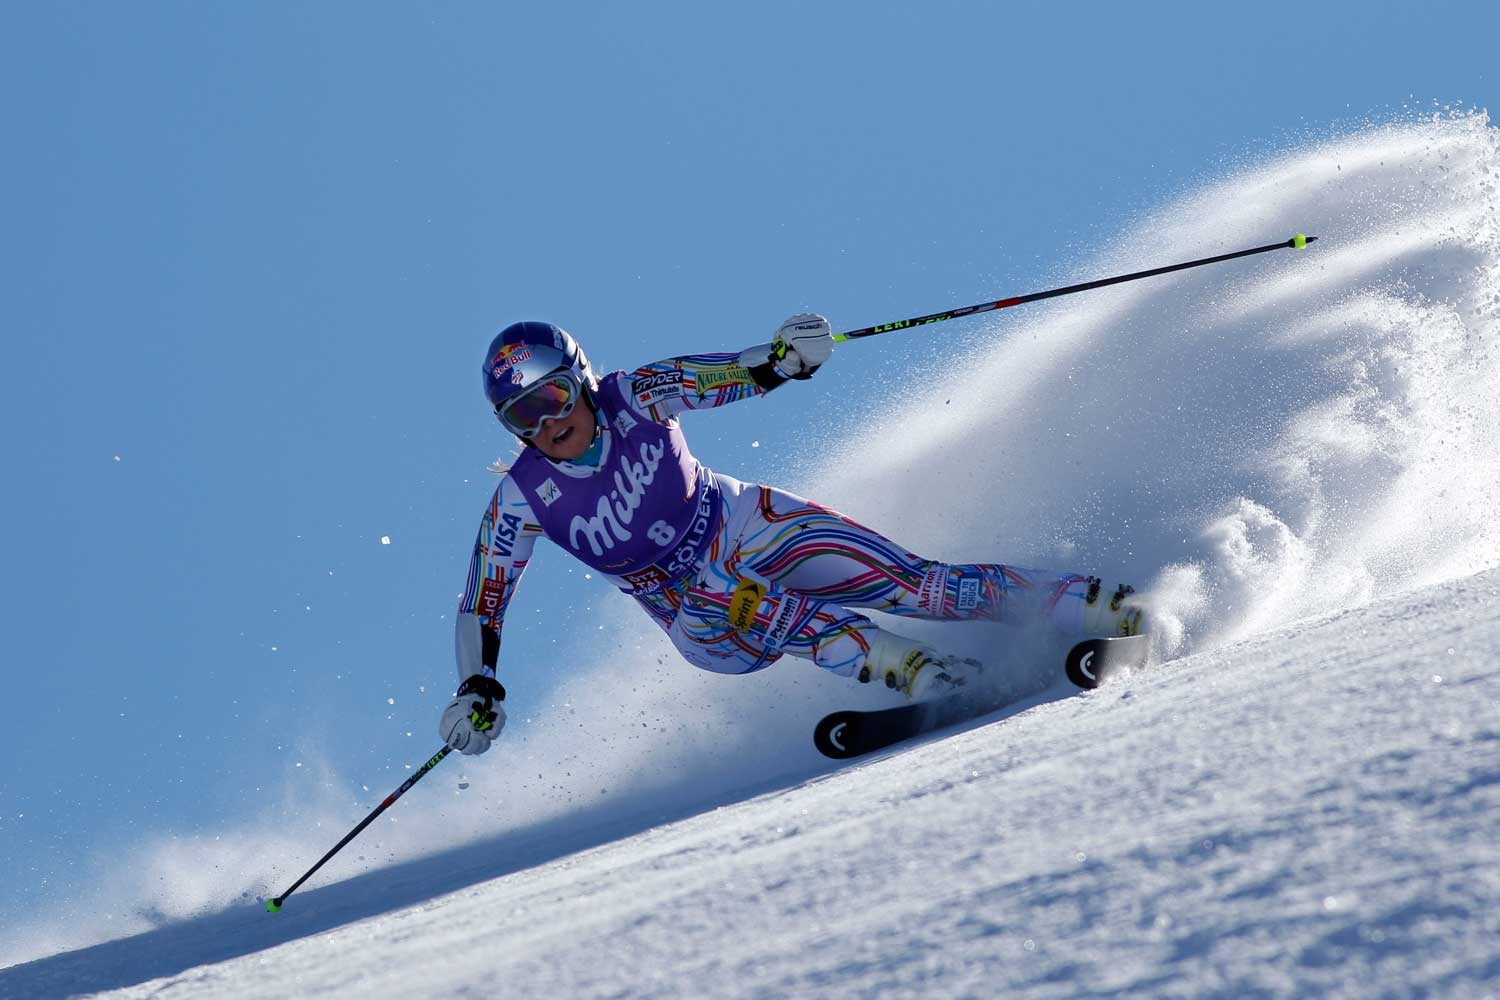 Lindsey Vonn tearing down the mountain during the Audi FIS Alpine Ski World Cup Women's Giant Slalom.